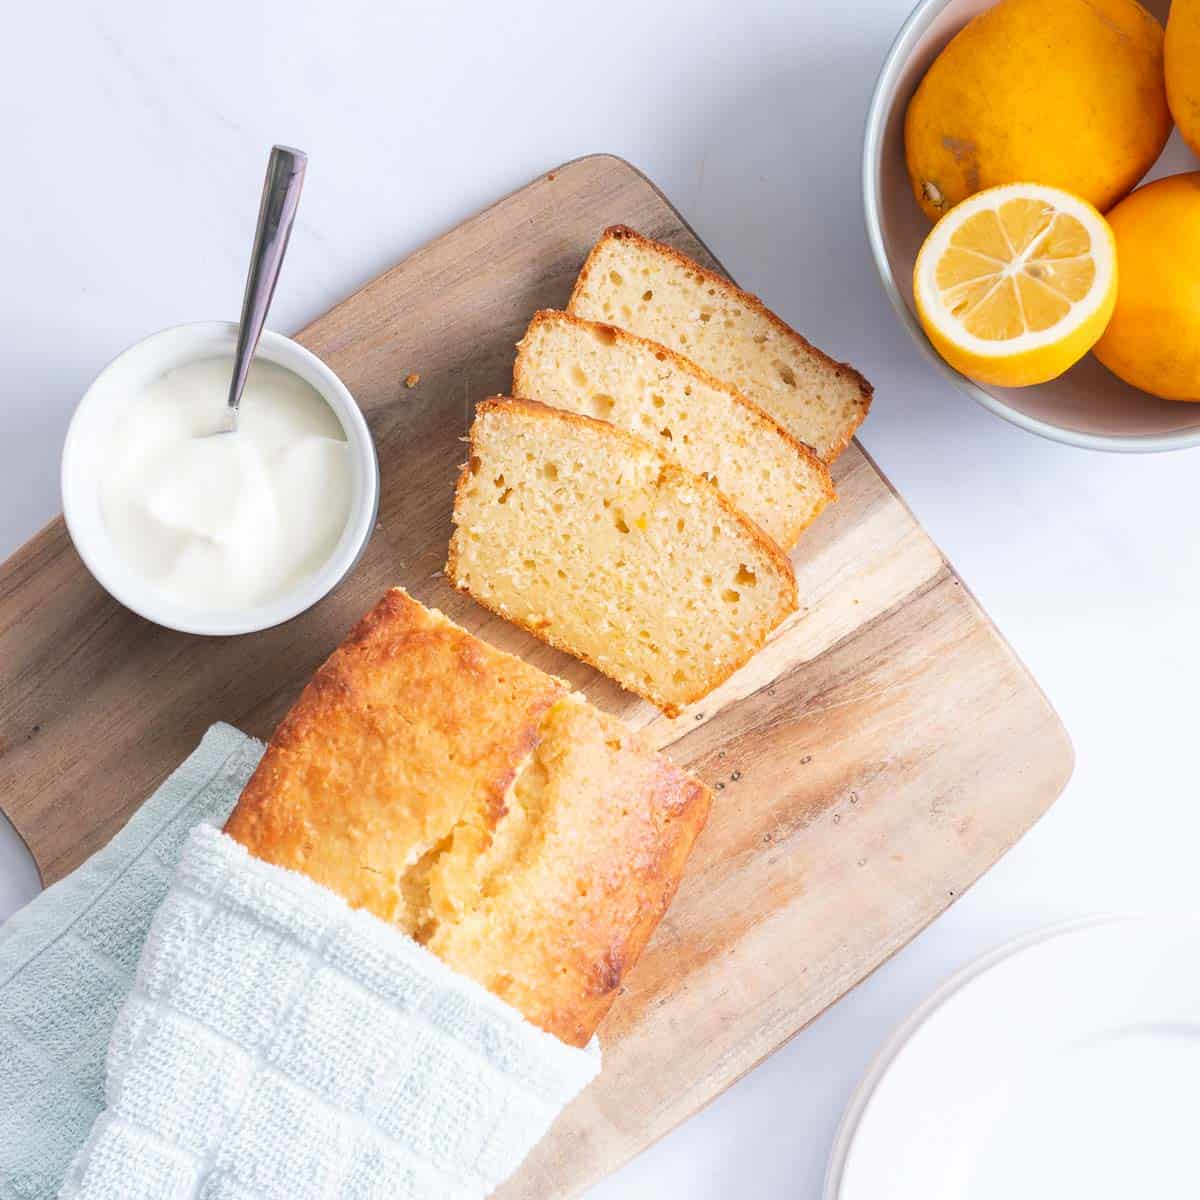 Lemon loaf on a wooding chopping board with a bowl of yoghurt and a bowl of lemons